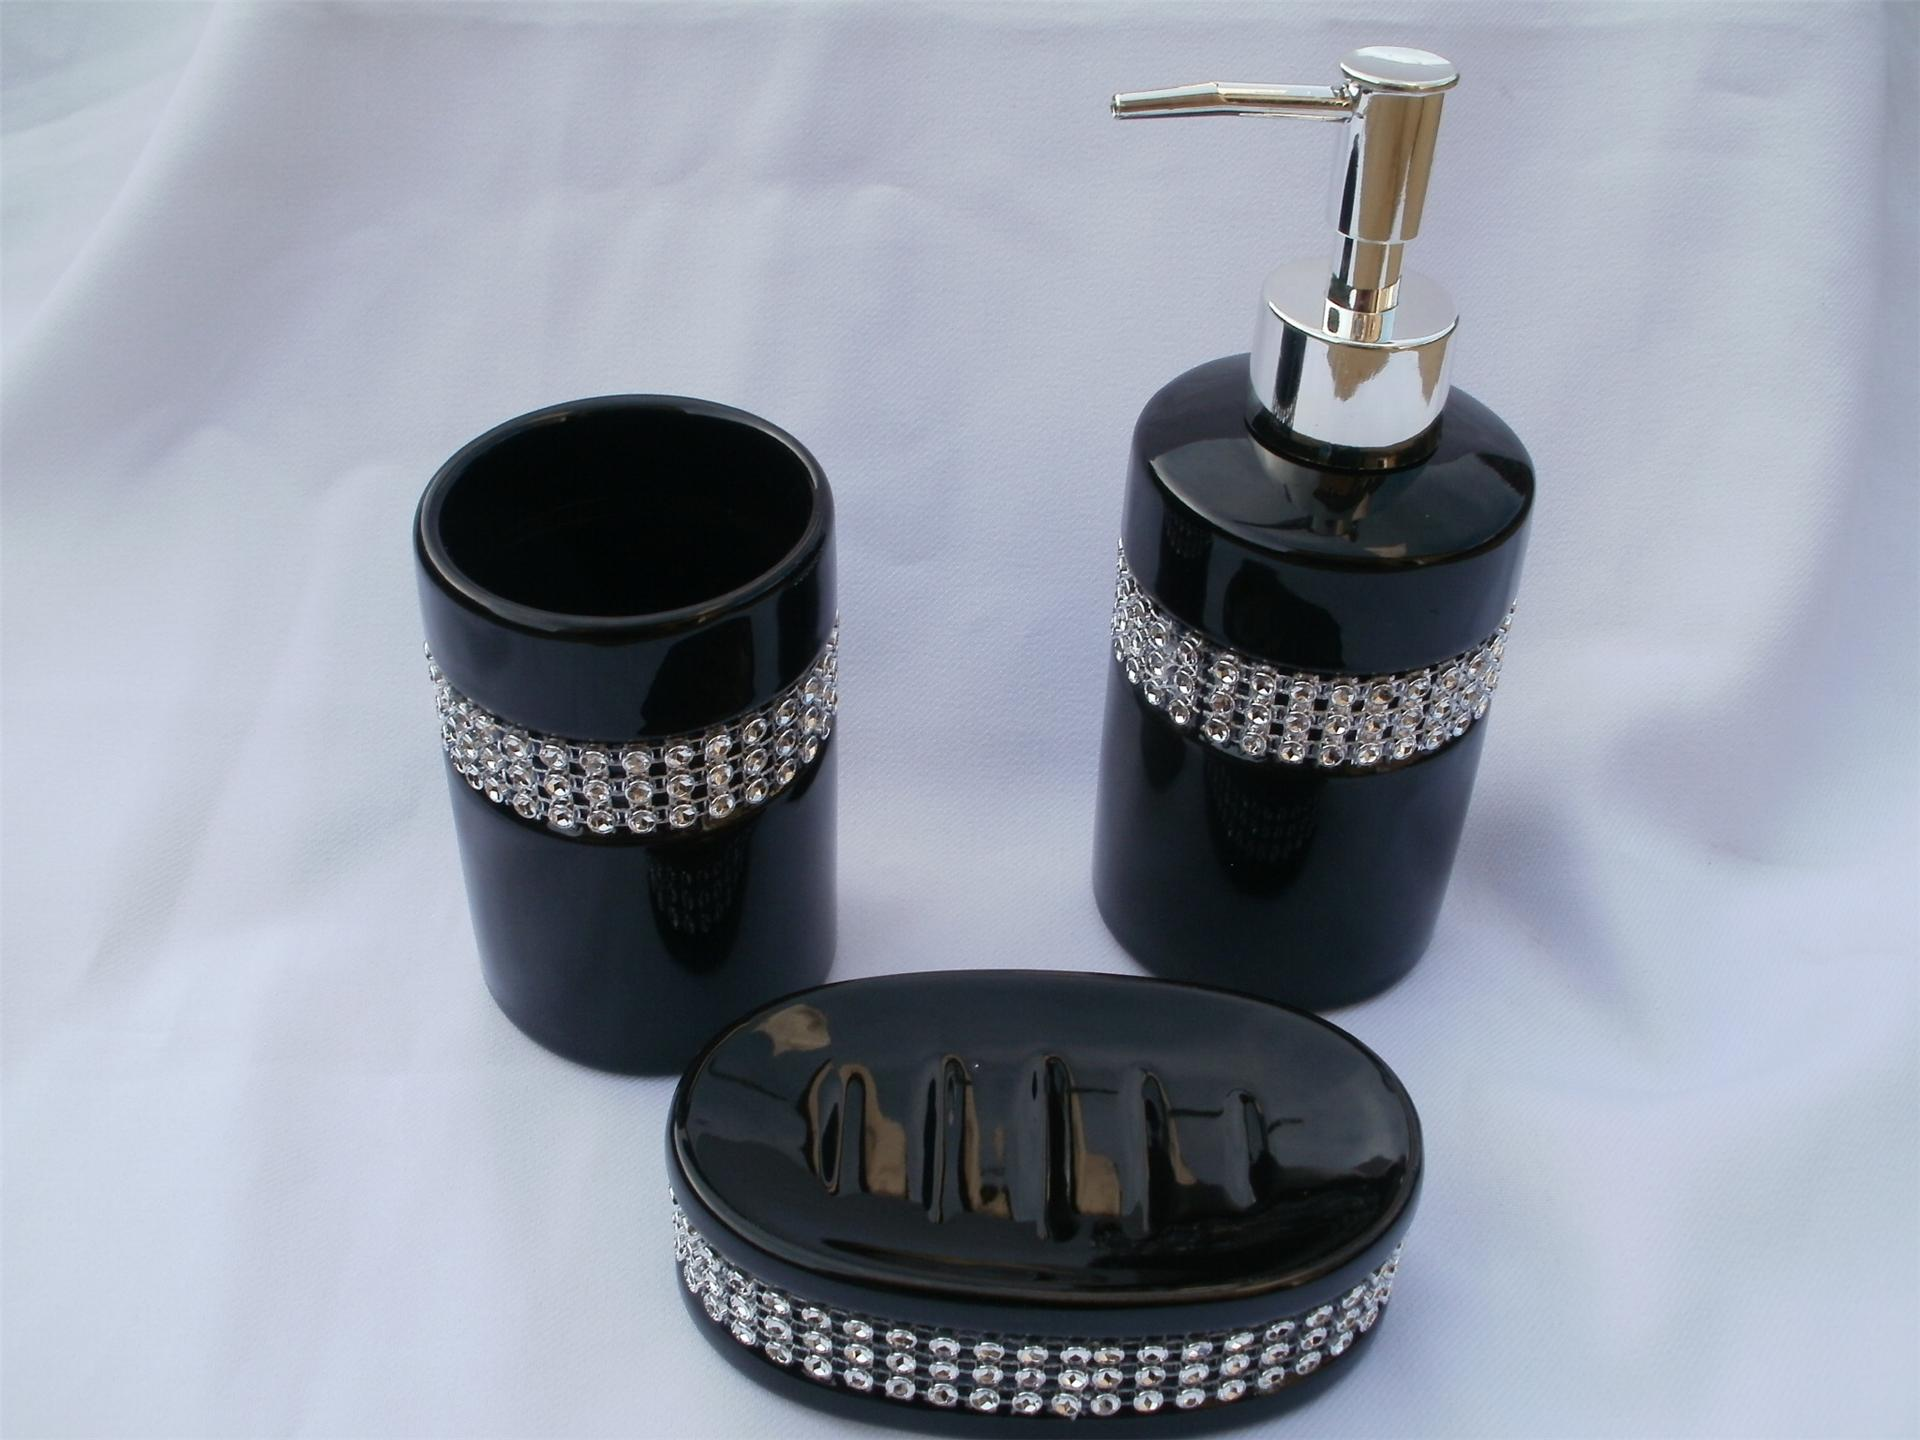 Sparkle bathroom accessories 3pc modern silver black for Black glass bathroom accessories